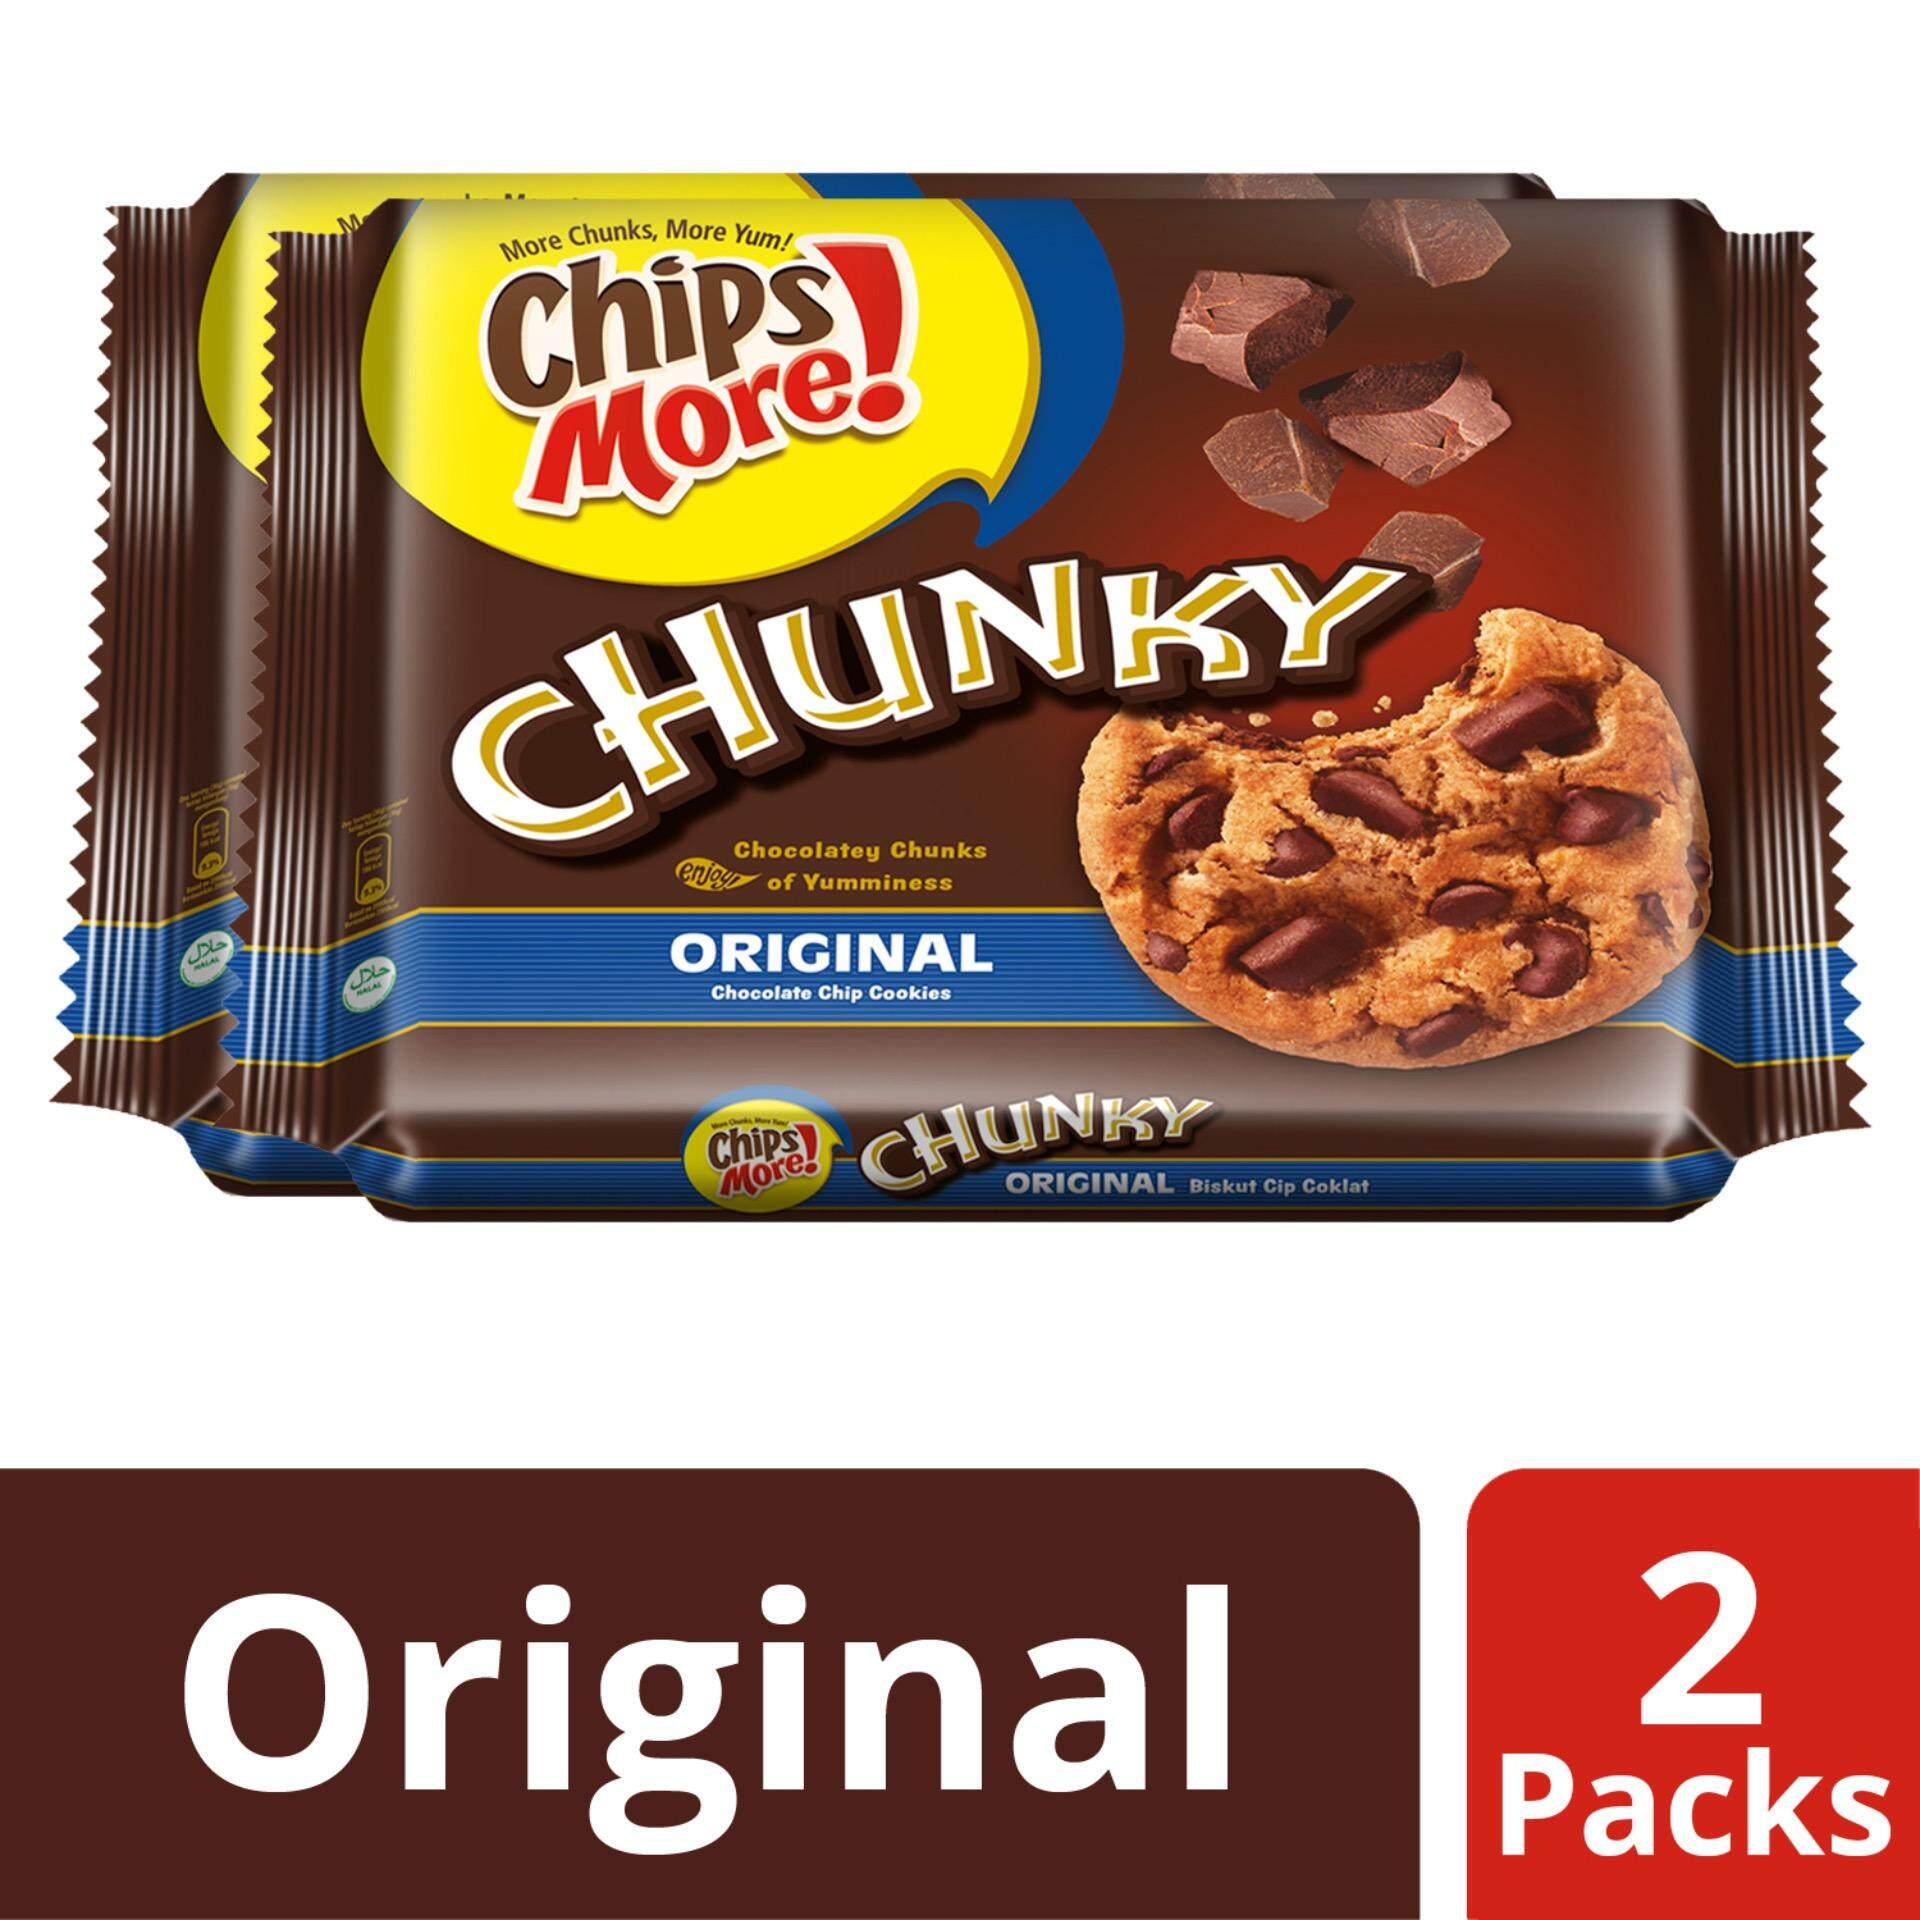 Chipsmore Chunky Original Multipack 216g X 2